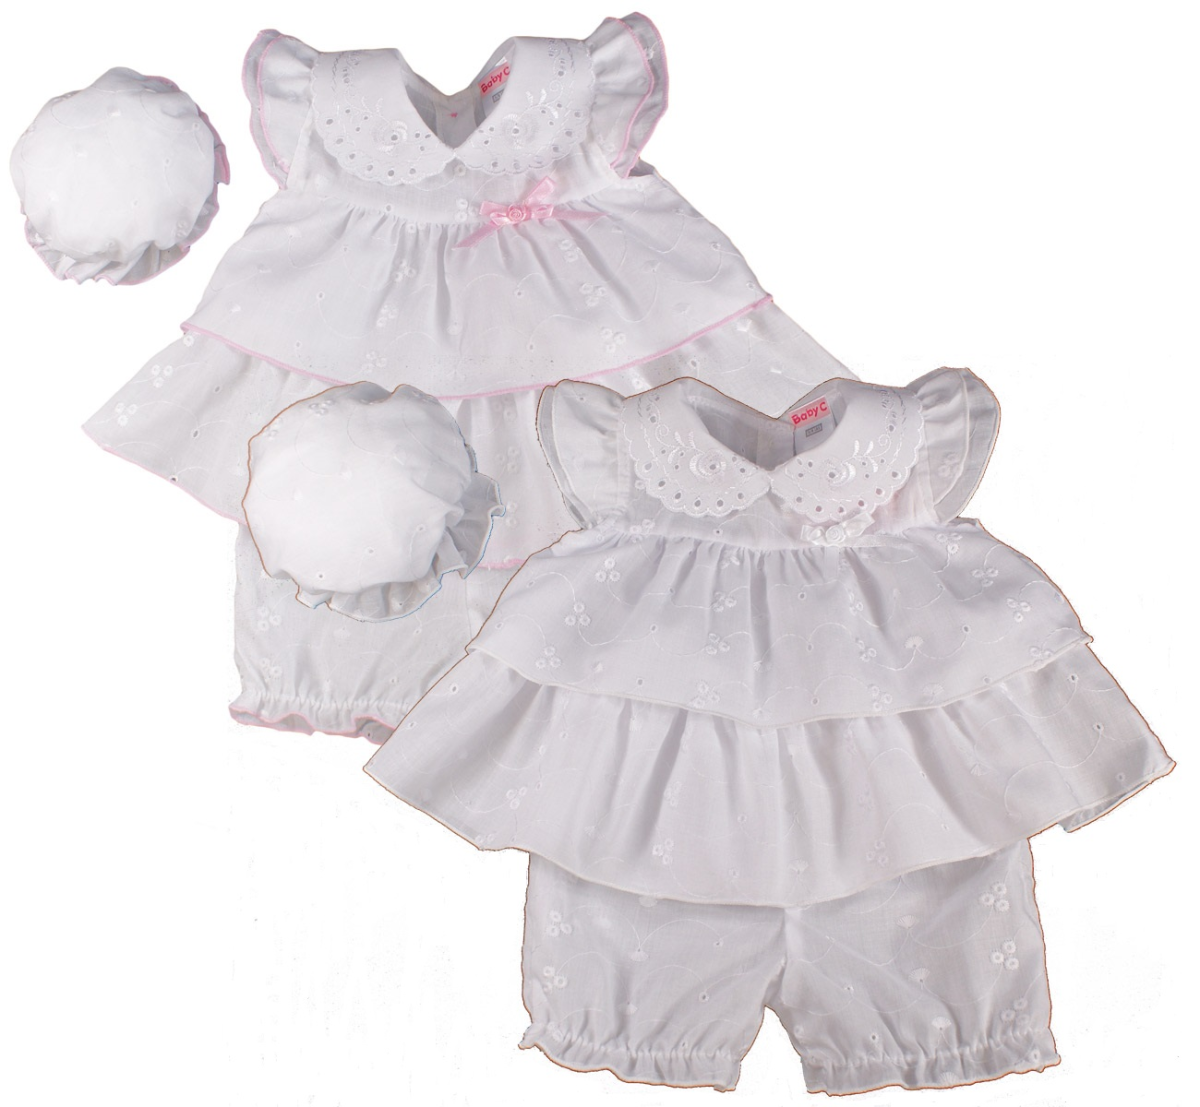 dea422991e8fe Baby girl dress premature tiny prem small reborn broderie anglaise ...